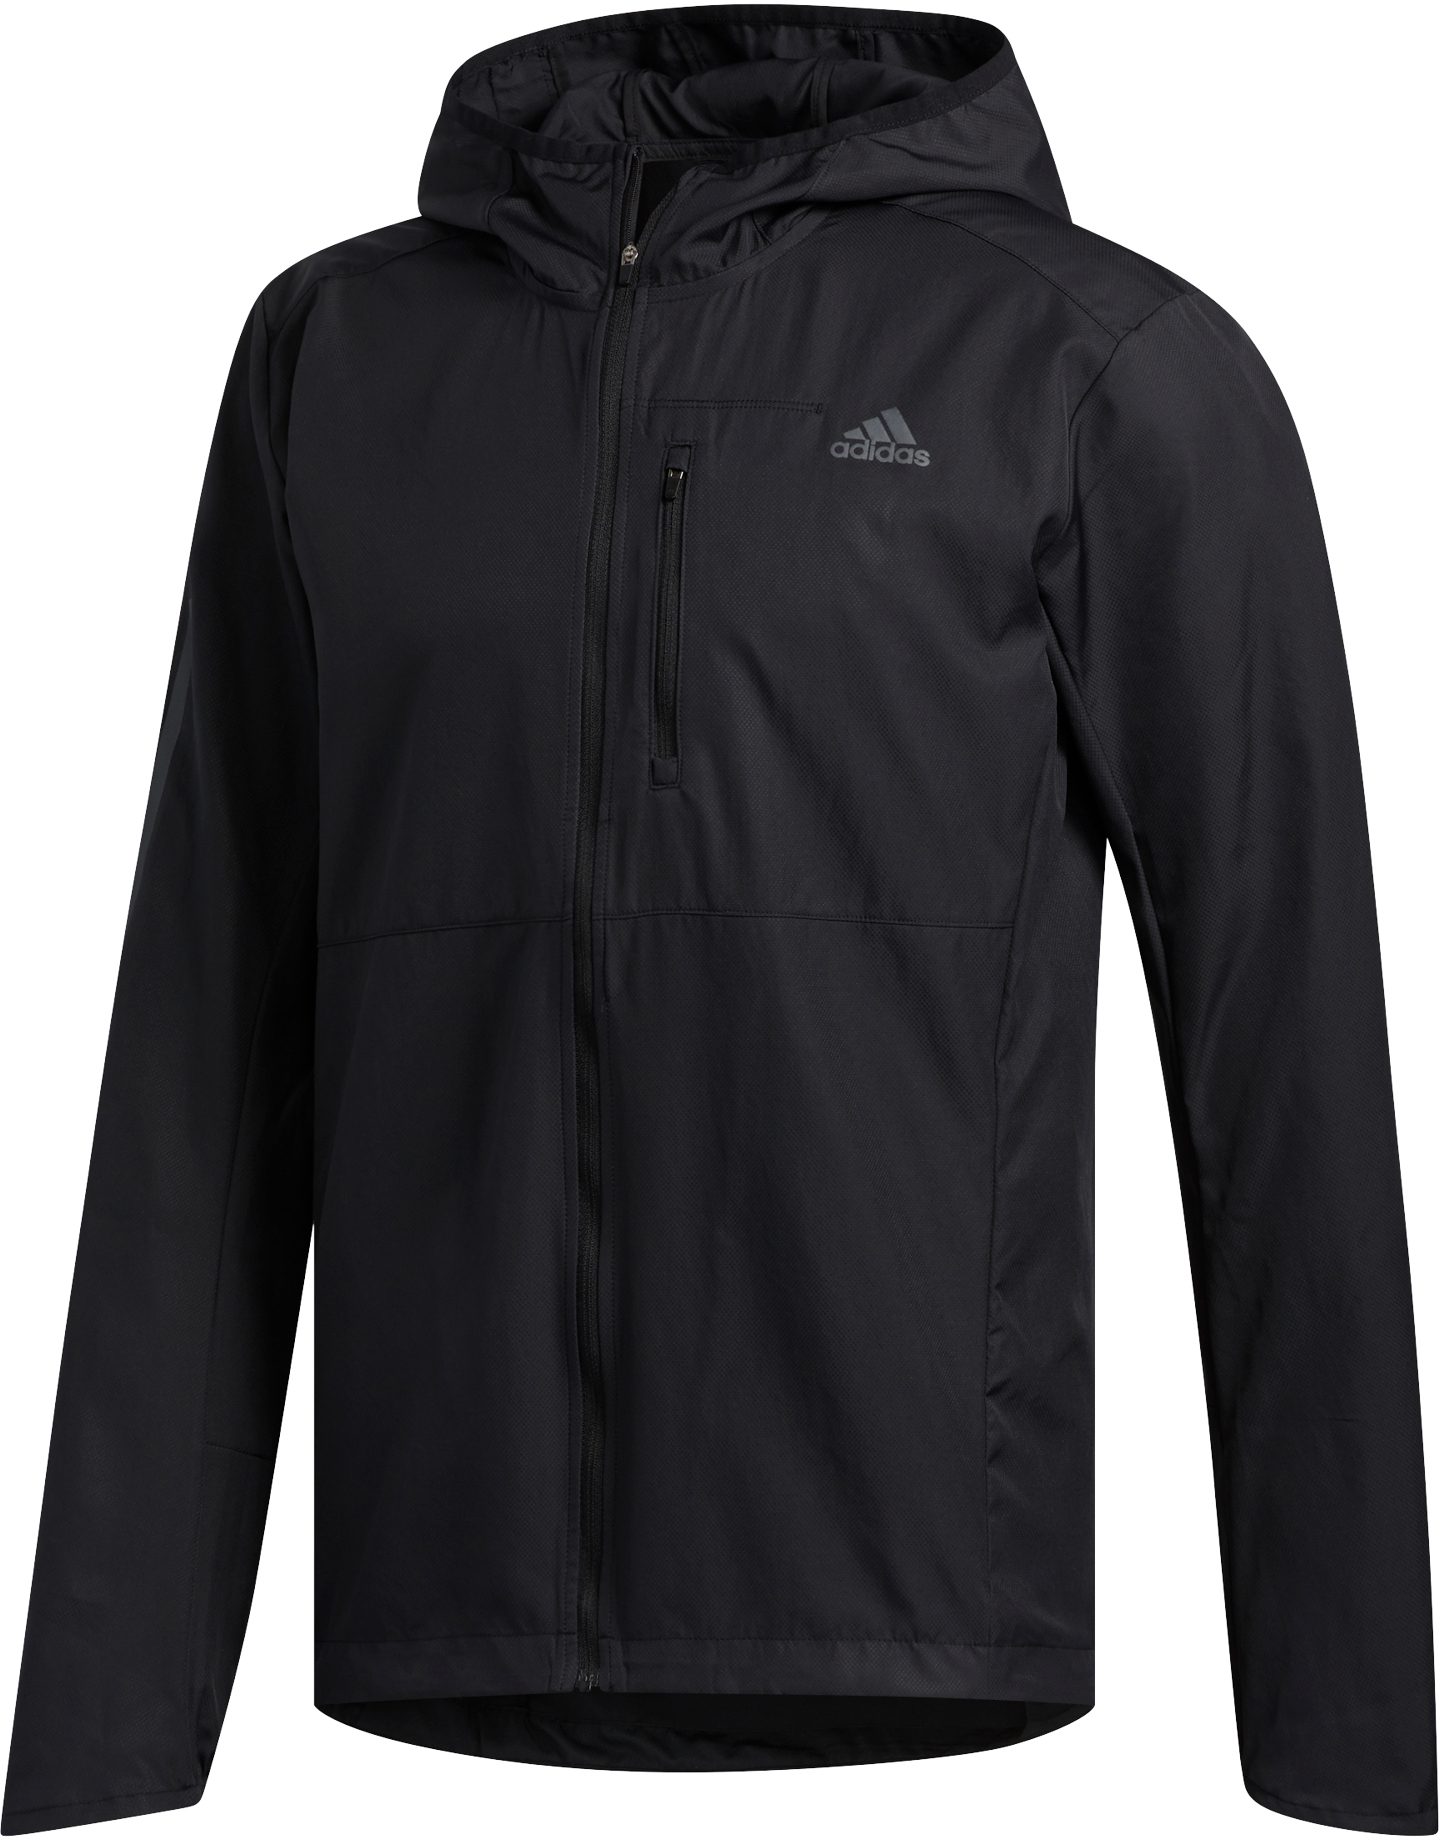 Adidas - Own The | cycling jacket